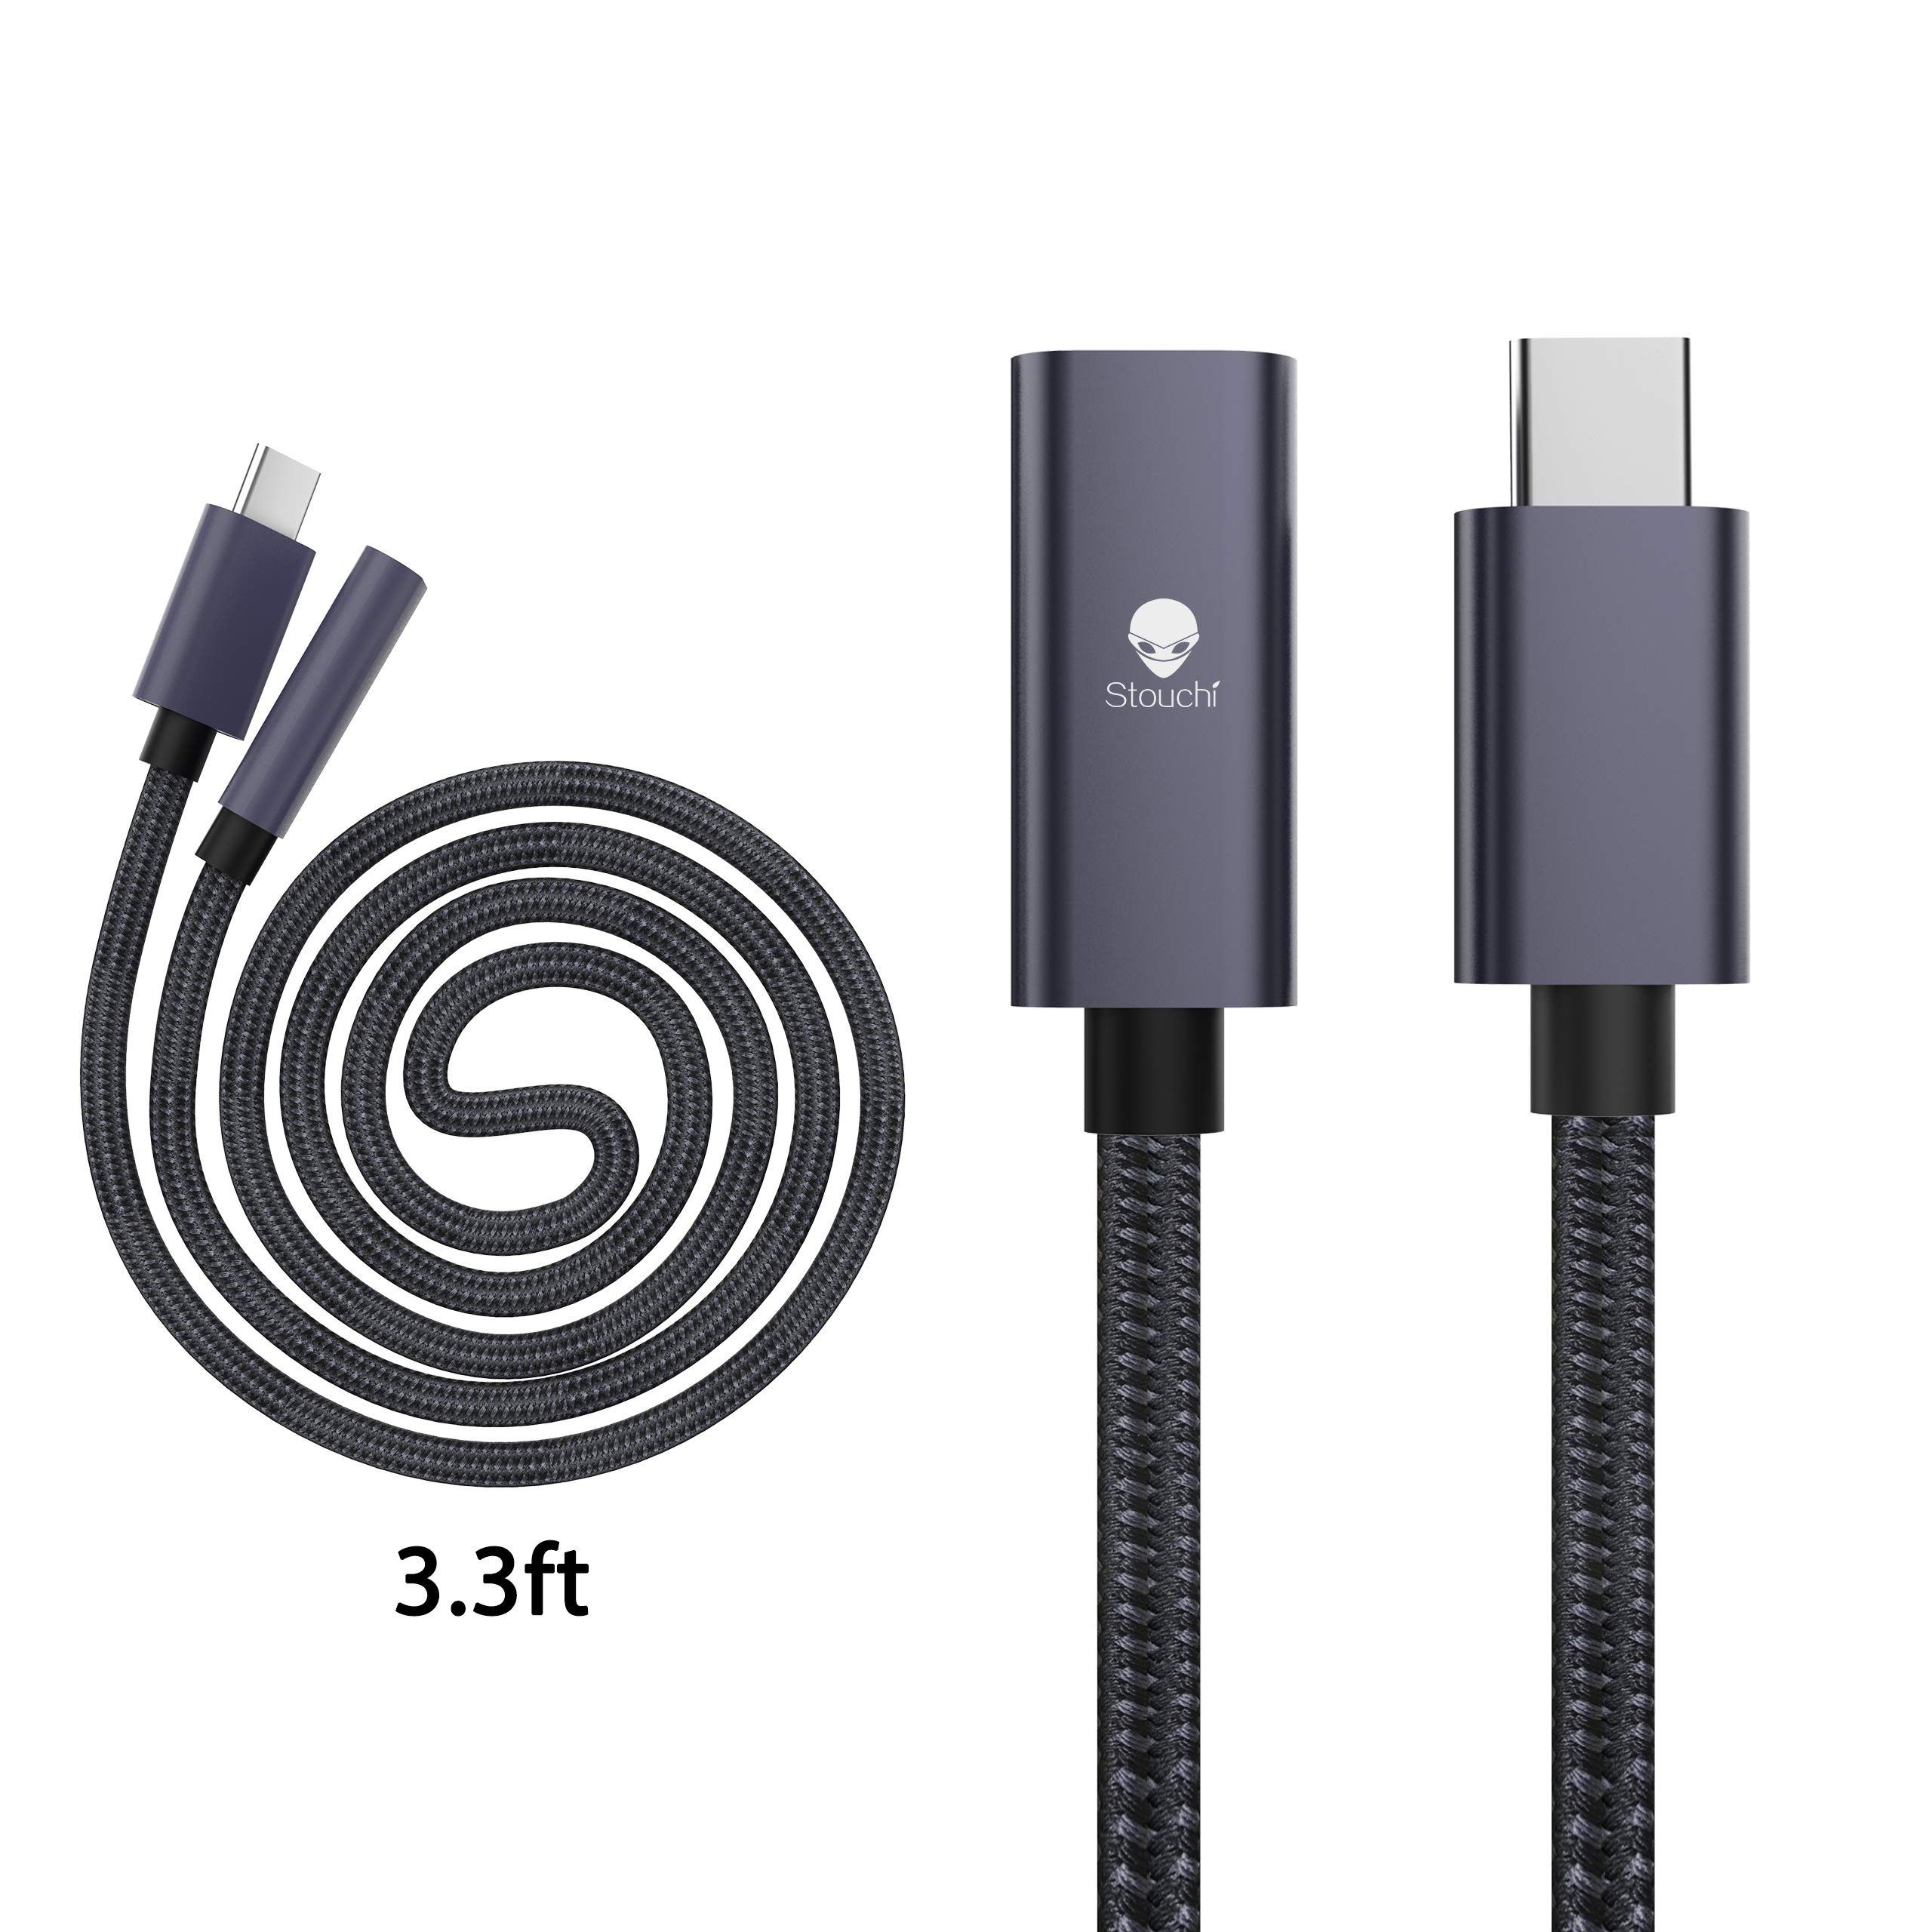 USB C Thunderbolt 3 Extension Cable,Stouchi USB Type C Male to Female Fast Charging & Audio Data Transfer Cable Compatible for Nintendo Switch, Thunderbolt 3 MacBook Pro, Google Pixel 2 2 XL 3(3.3 FT) by Stouchi